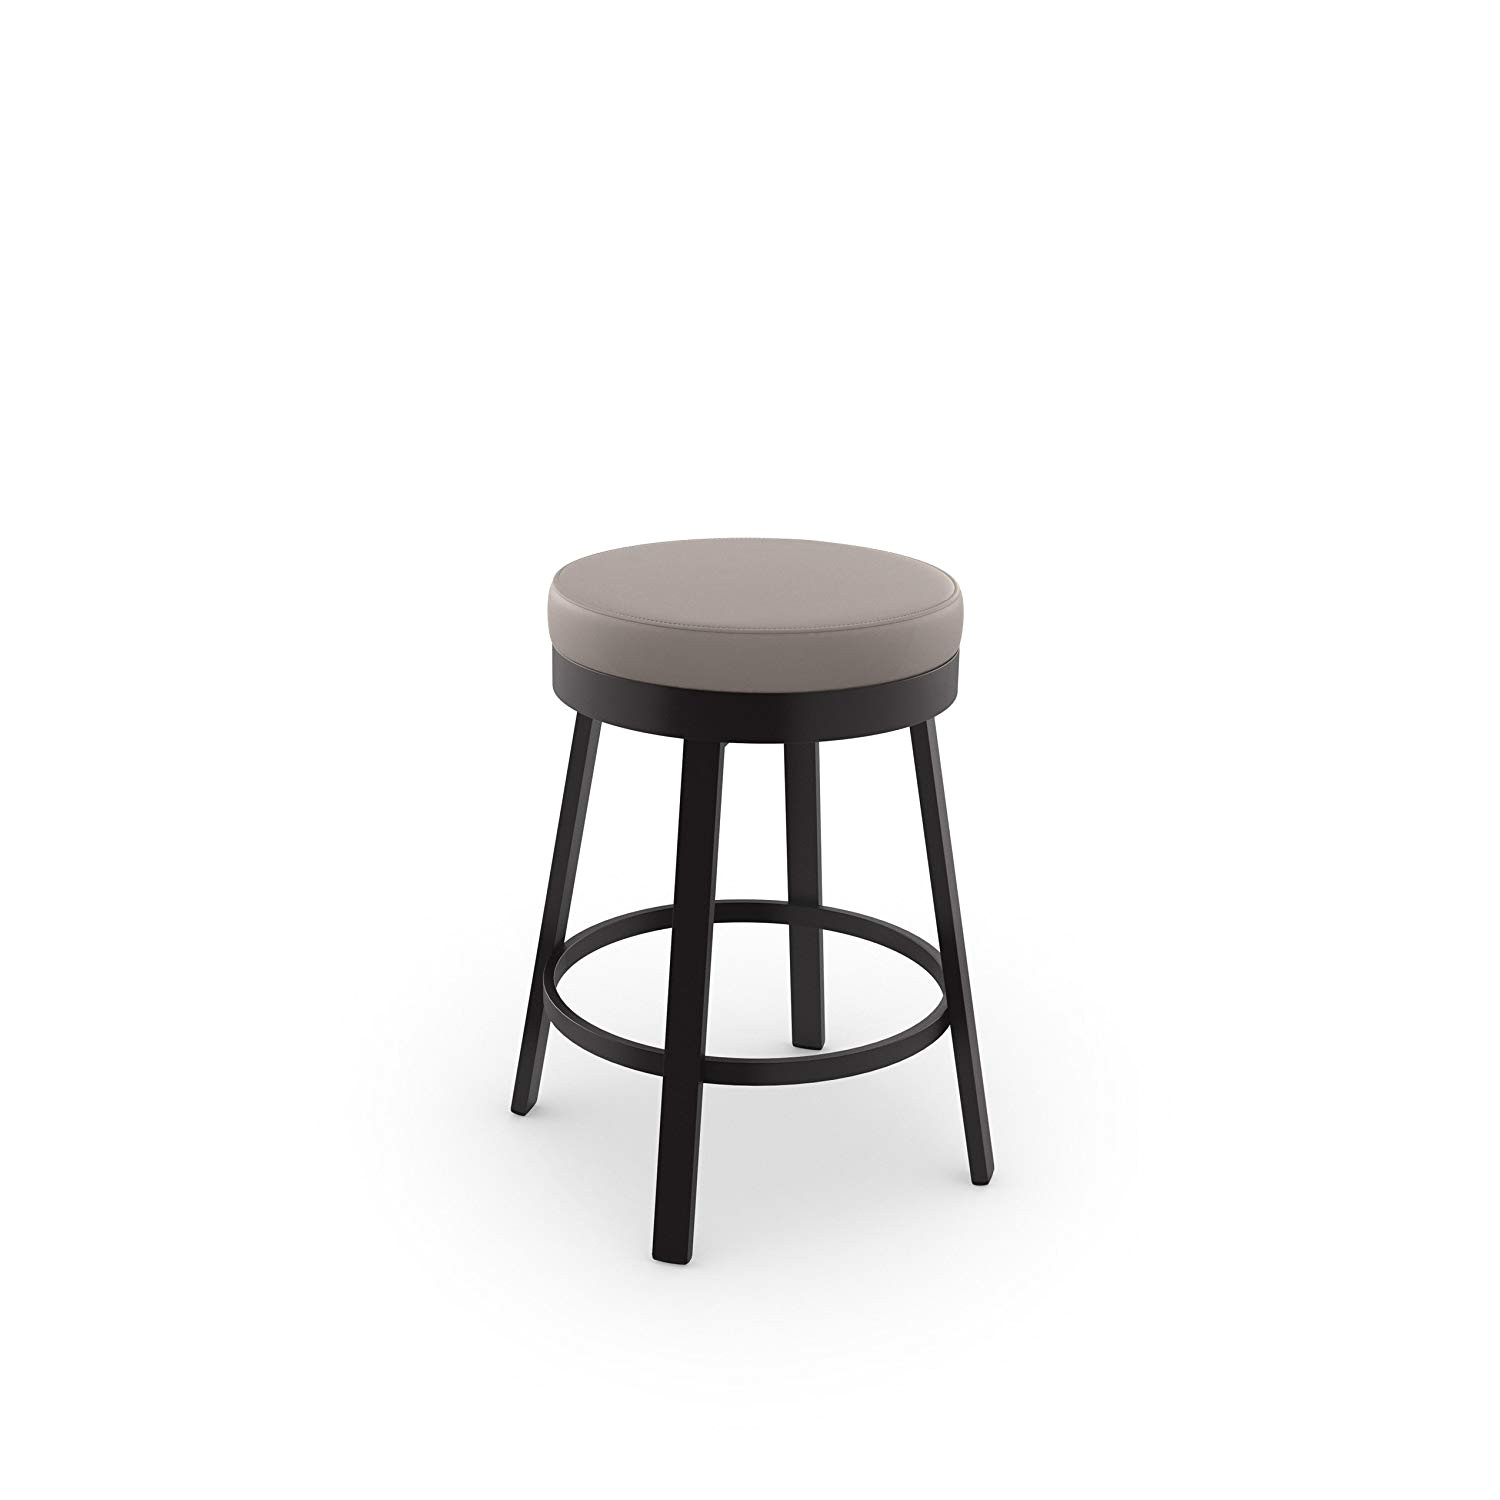 Replacement Seats For Swivel Bar Stools Canada Adinaporter